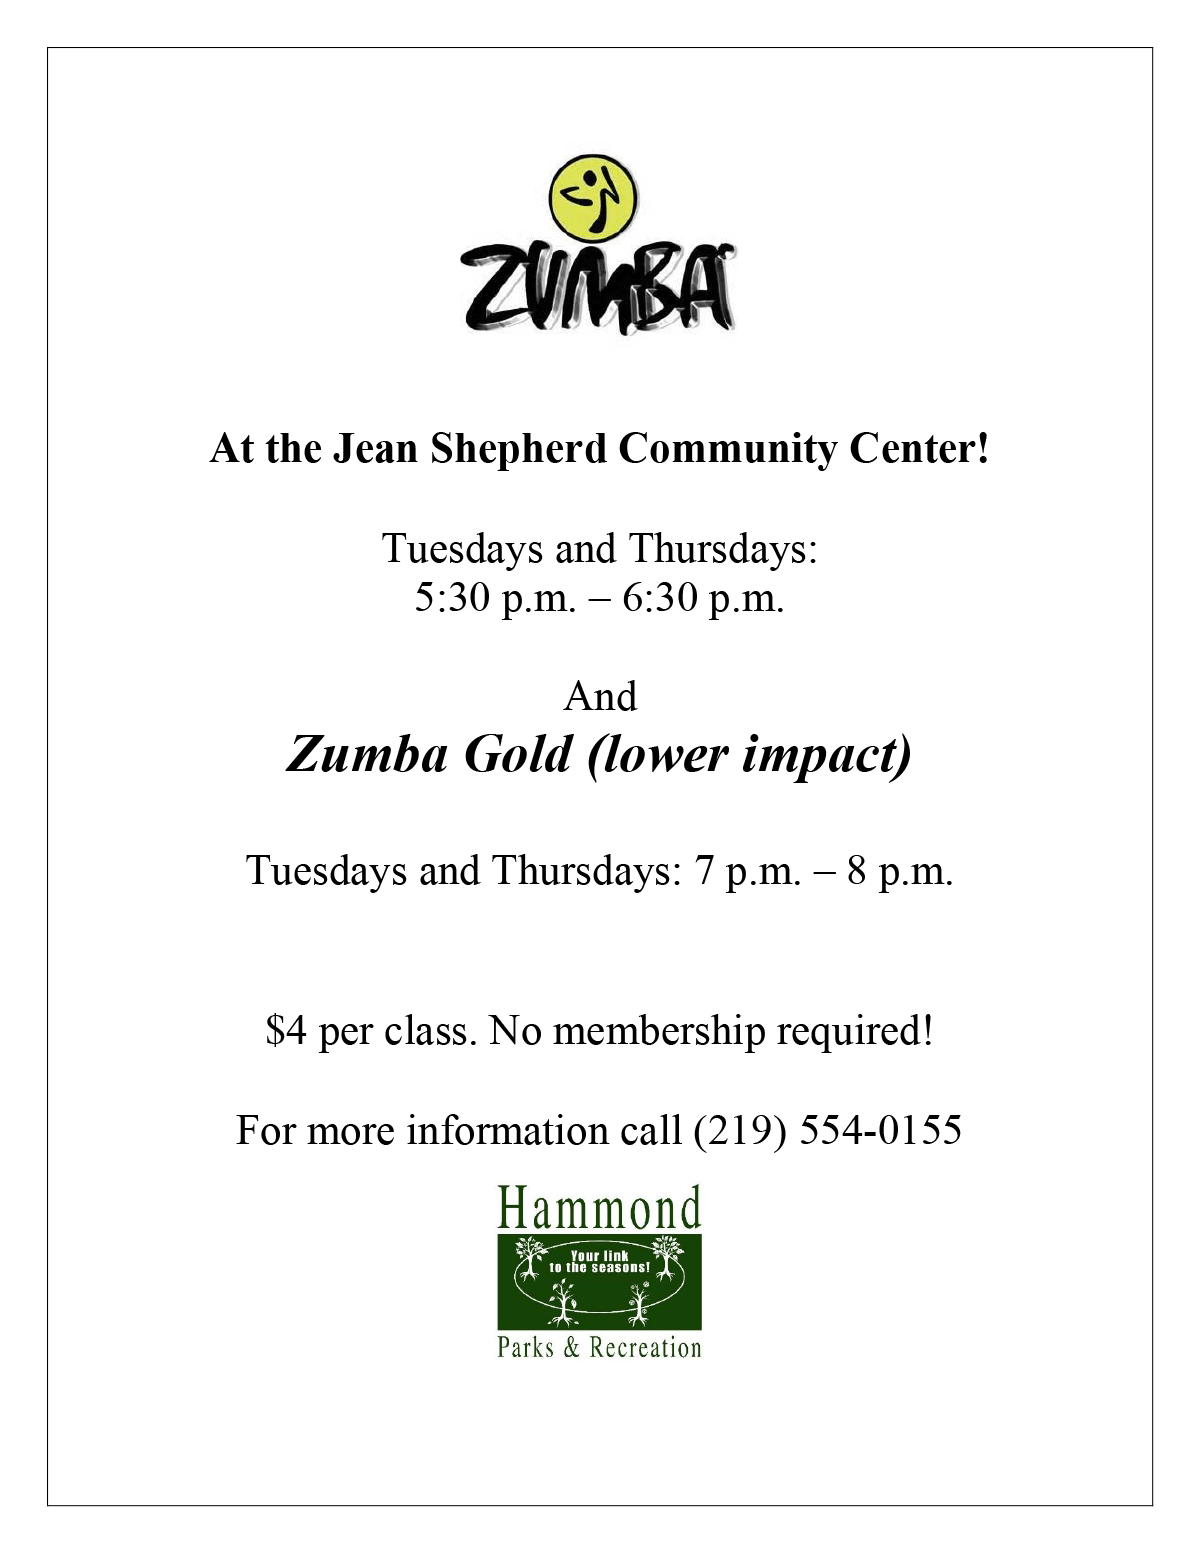 Zumba at the Jean Shepherd Community Center! Tuesdays & Thursdays, 5:30pm – 6:30pm. Also available: Zumba Gold (lower impact), Tuesdays & Thursdays: 7pm – 8pm. $4 per class. No membership required! For more information call (219) 554-0155.